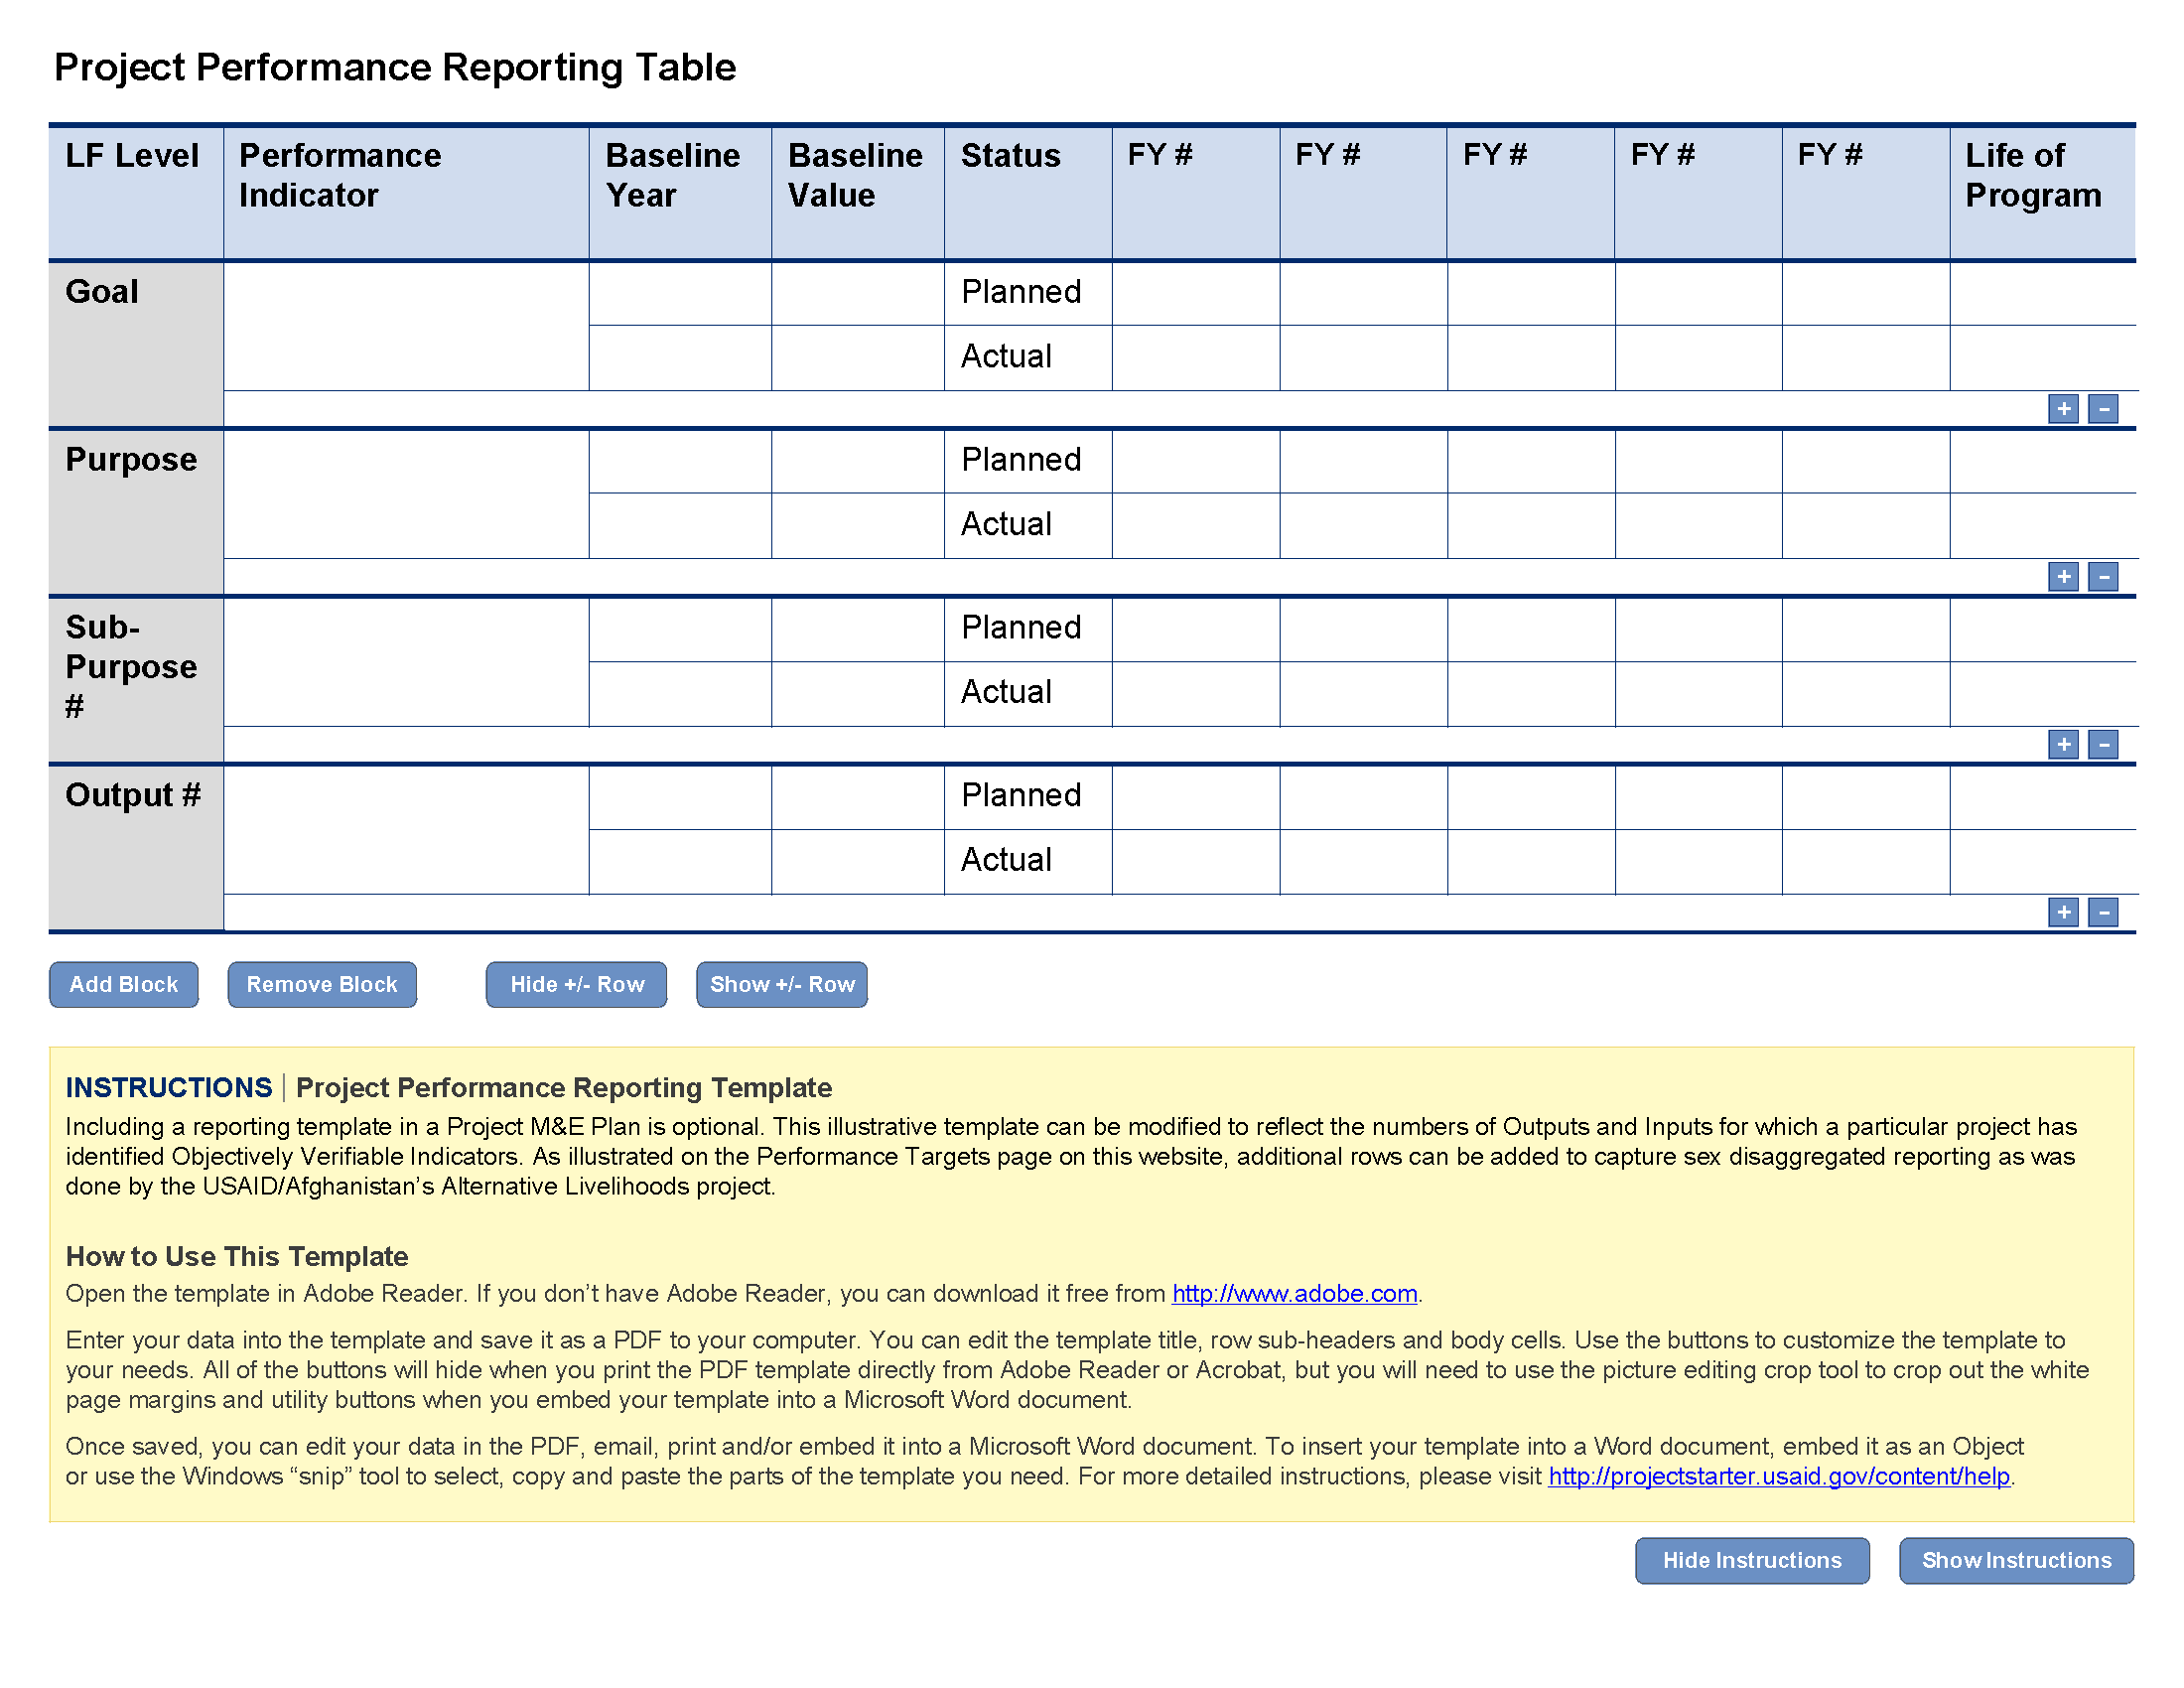 Project Performance Reporting Template | Project Starter — USAID